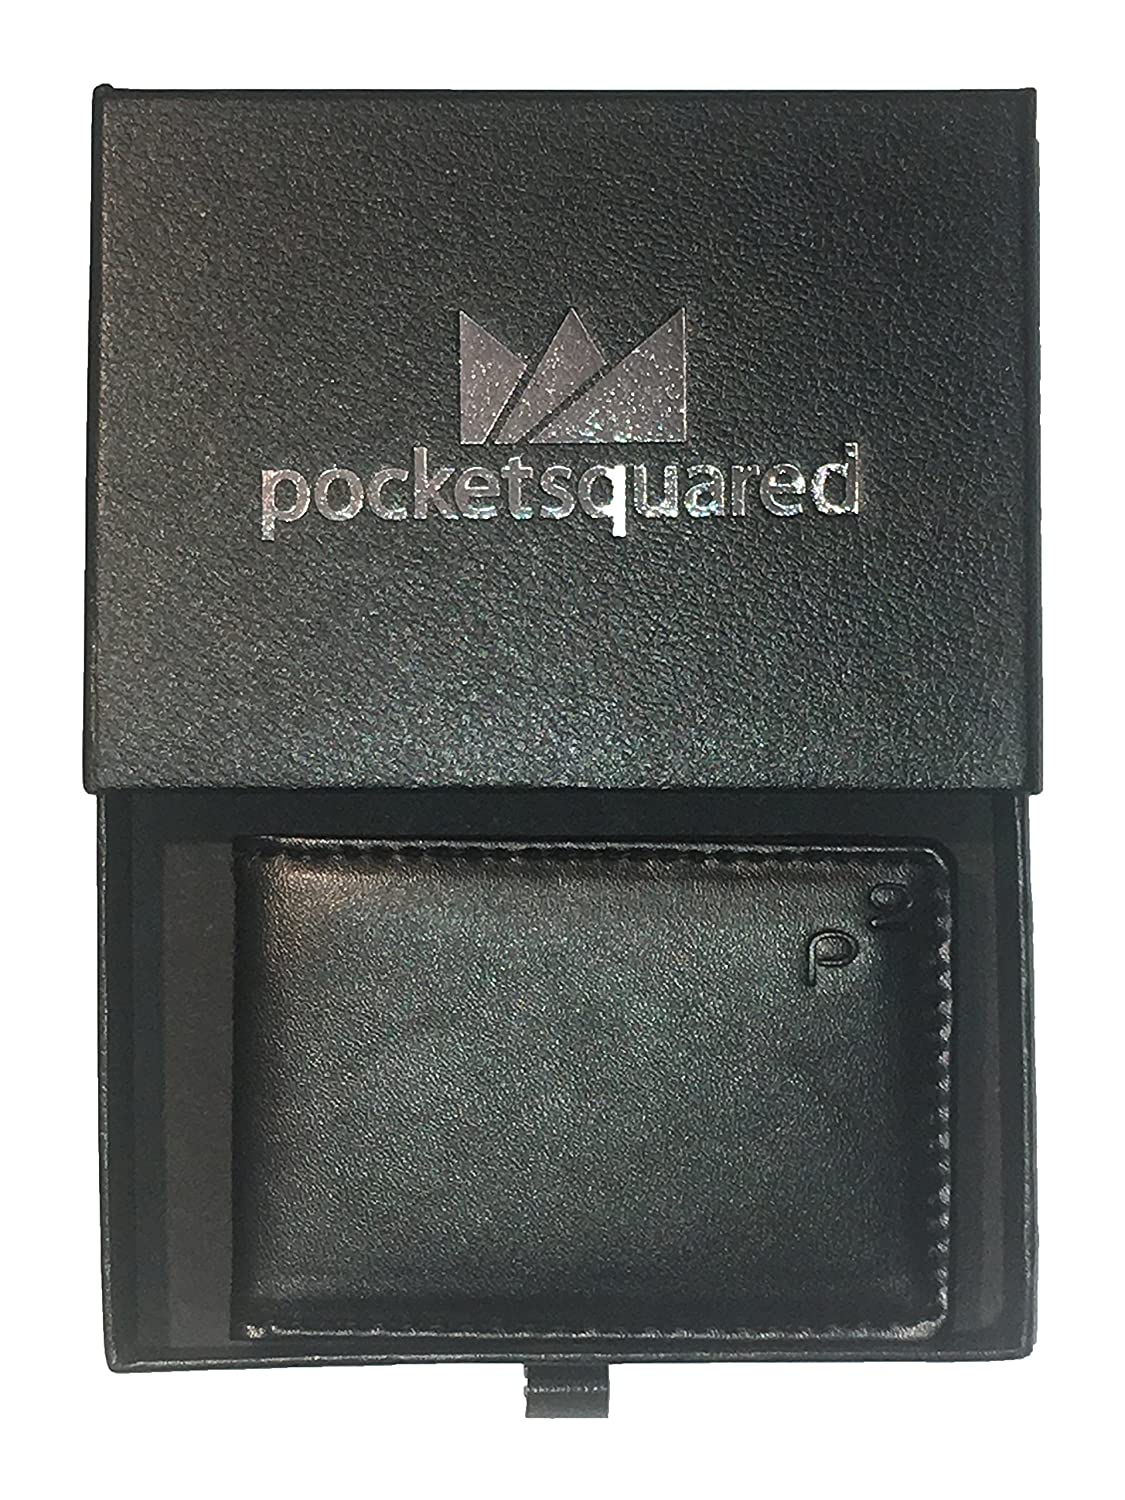 Pocket Square Holder PocketSquared